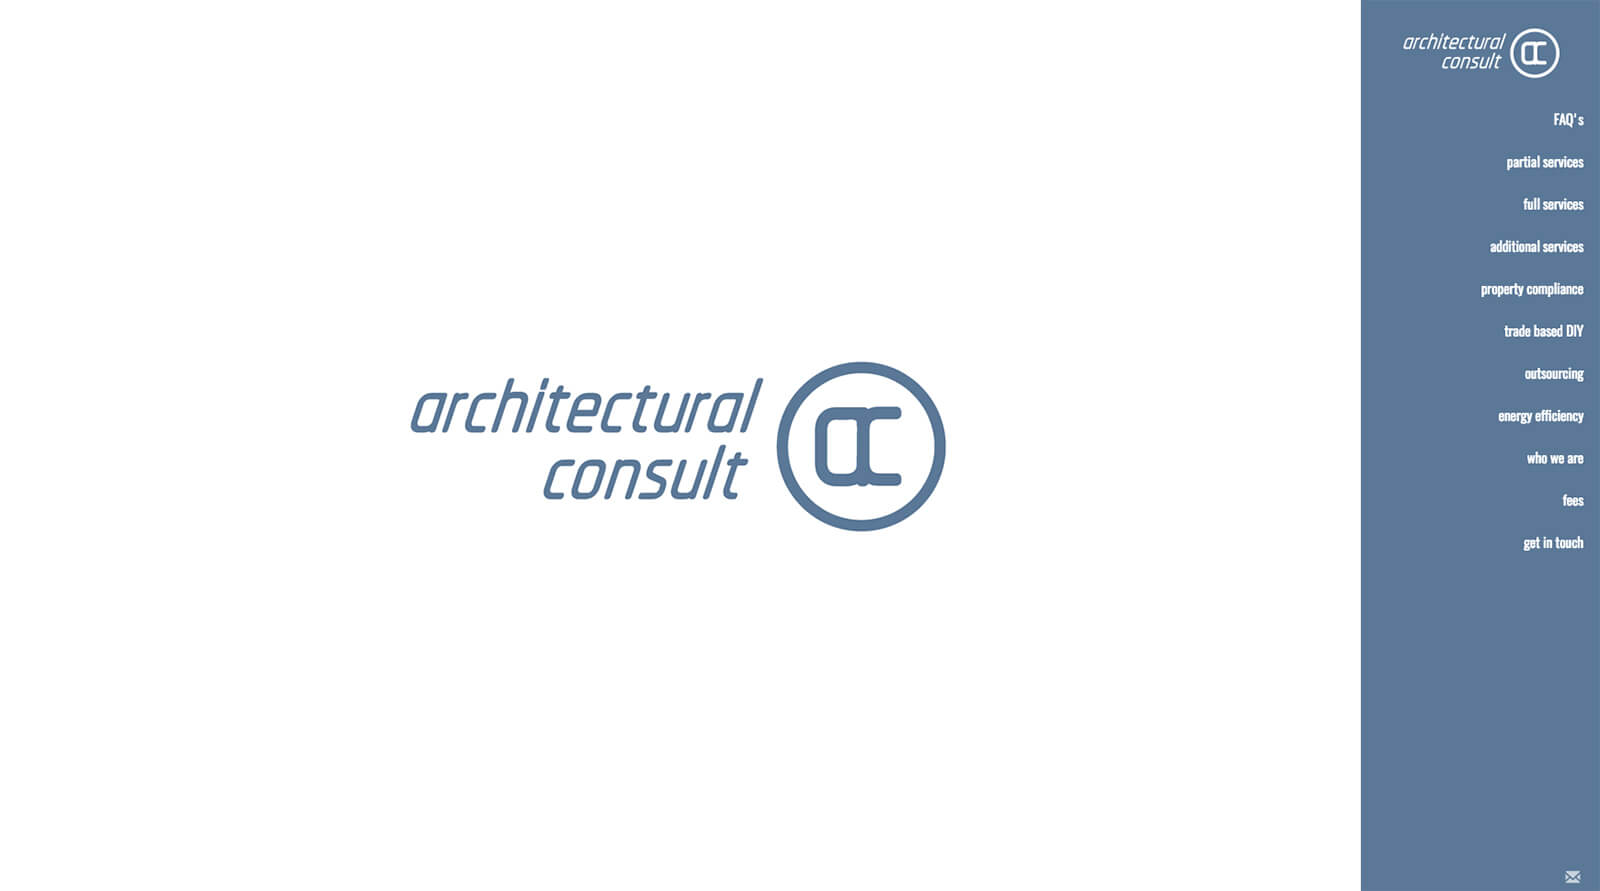 Custom Web Development for a registered Architectural Consult based in Port Elizabeth, South Africa